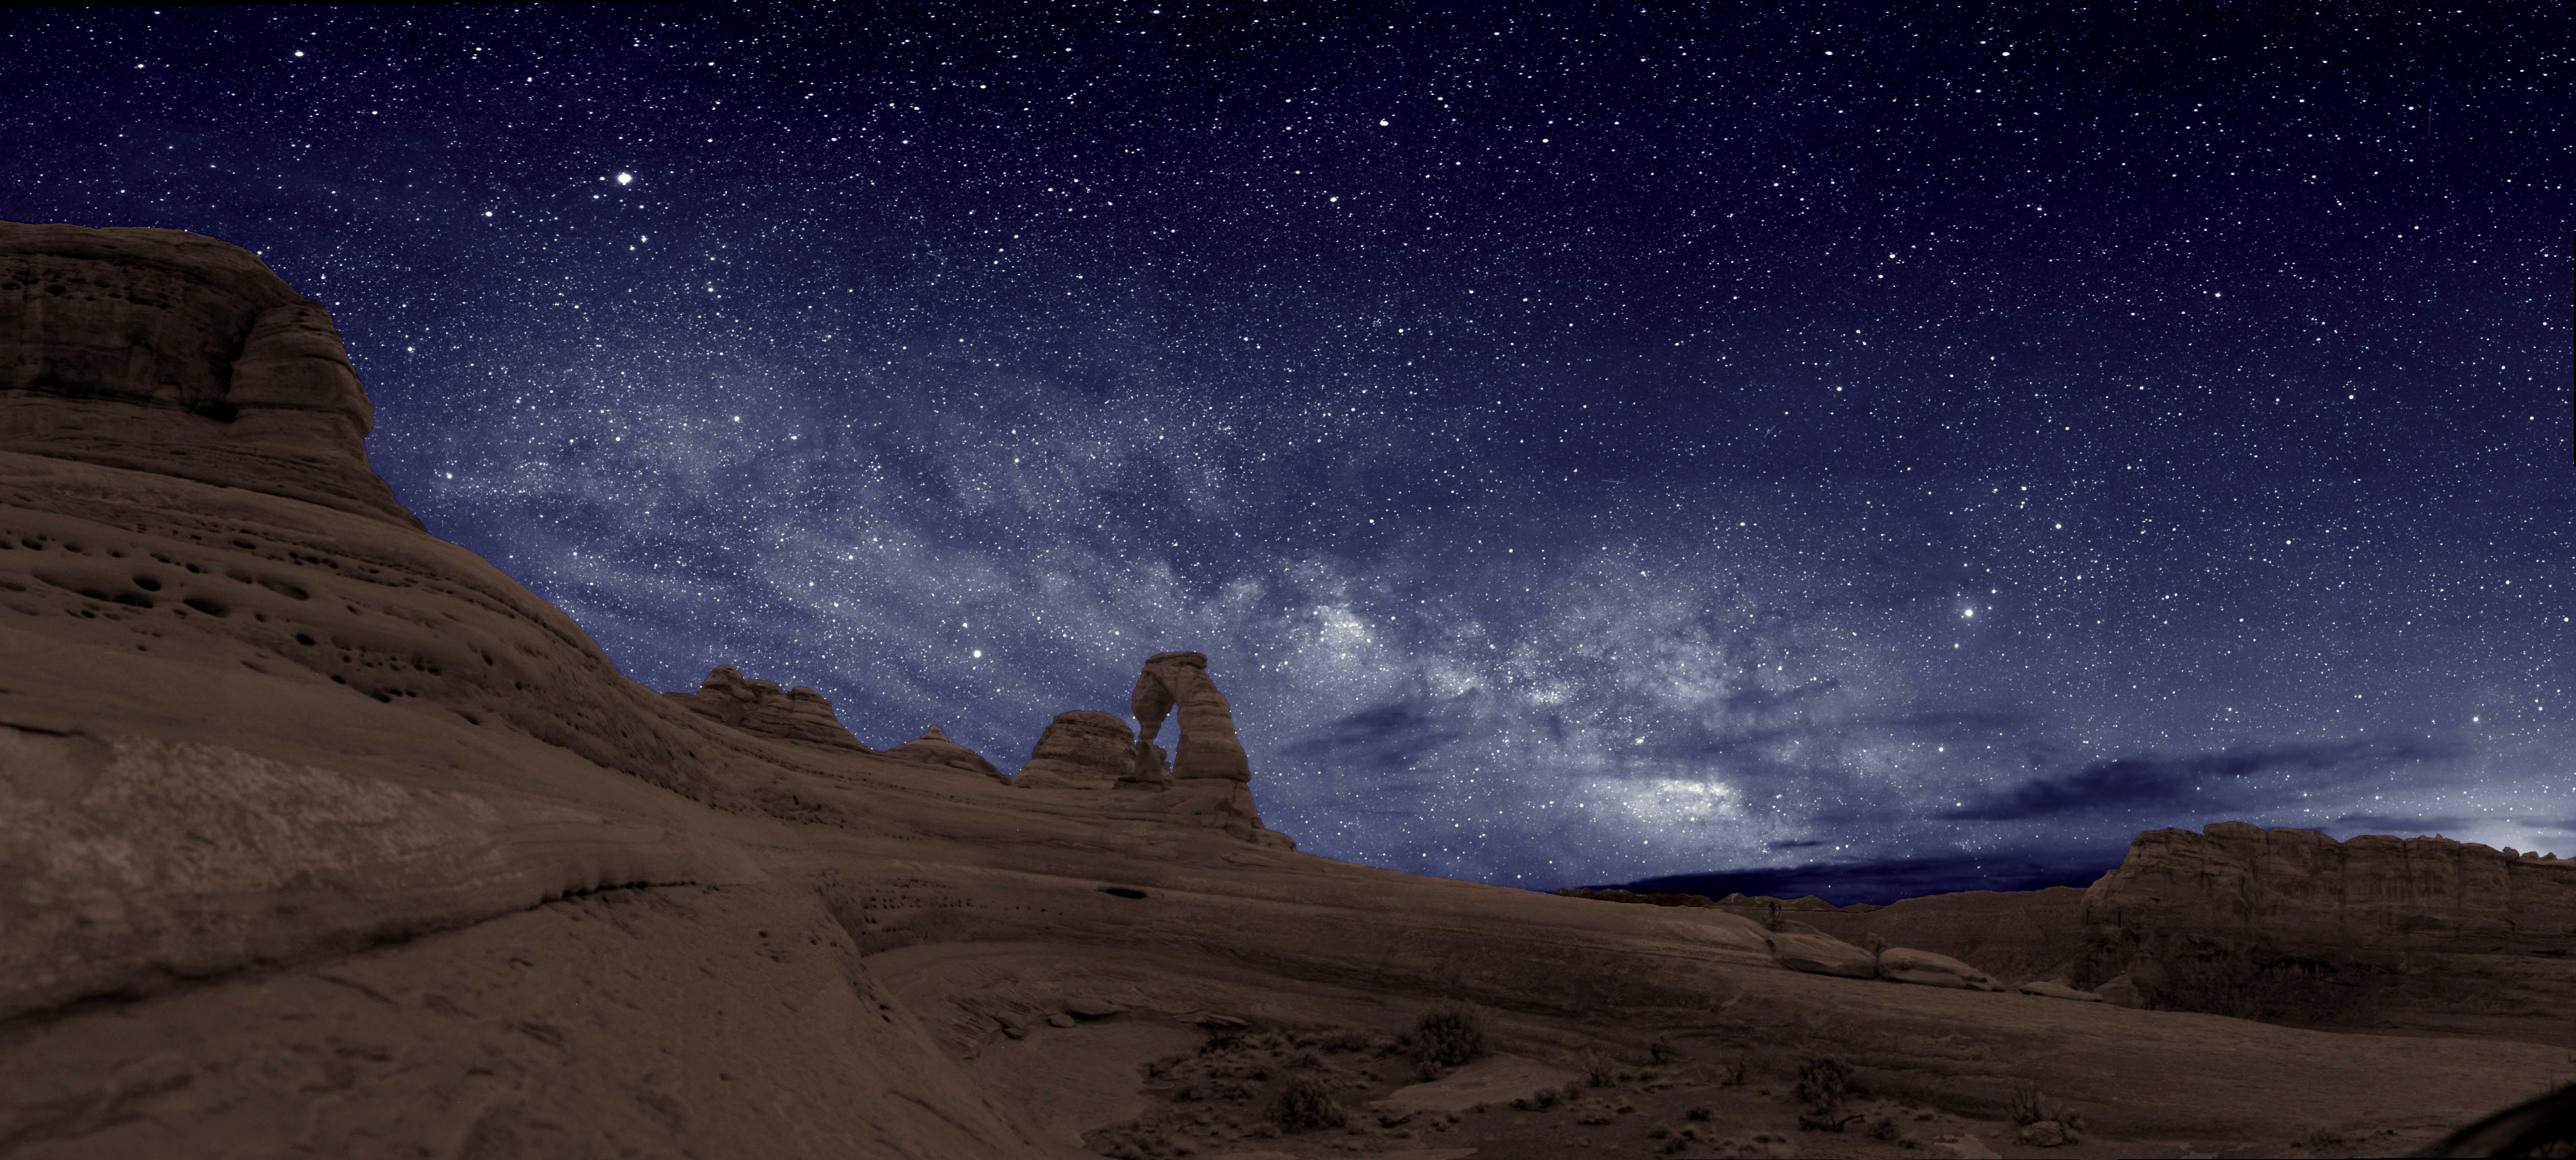 Night sky over Delicate Arch, Arches National Park